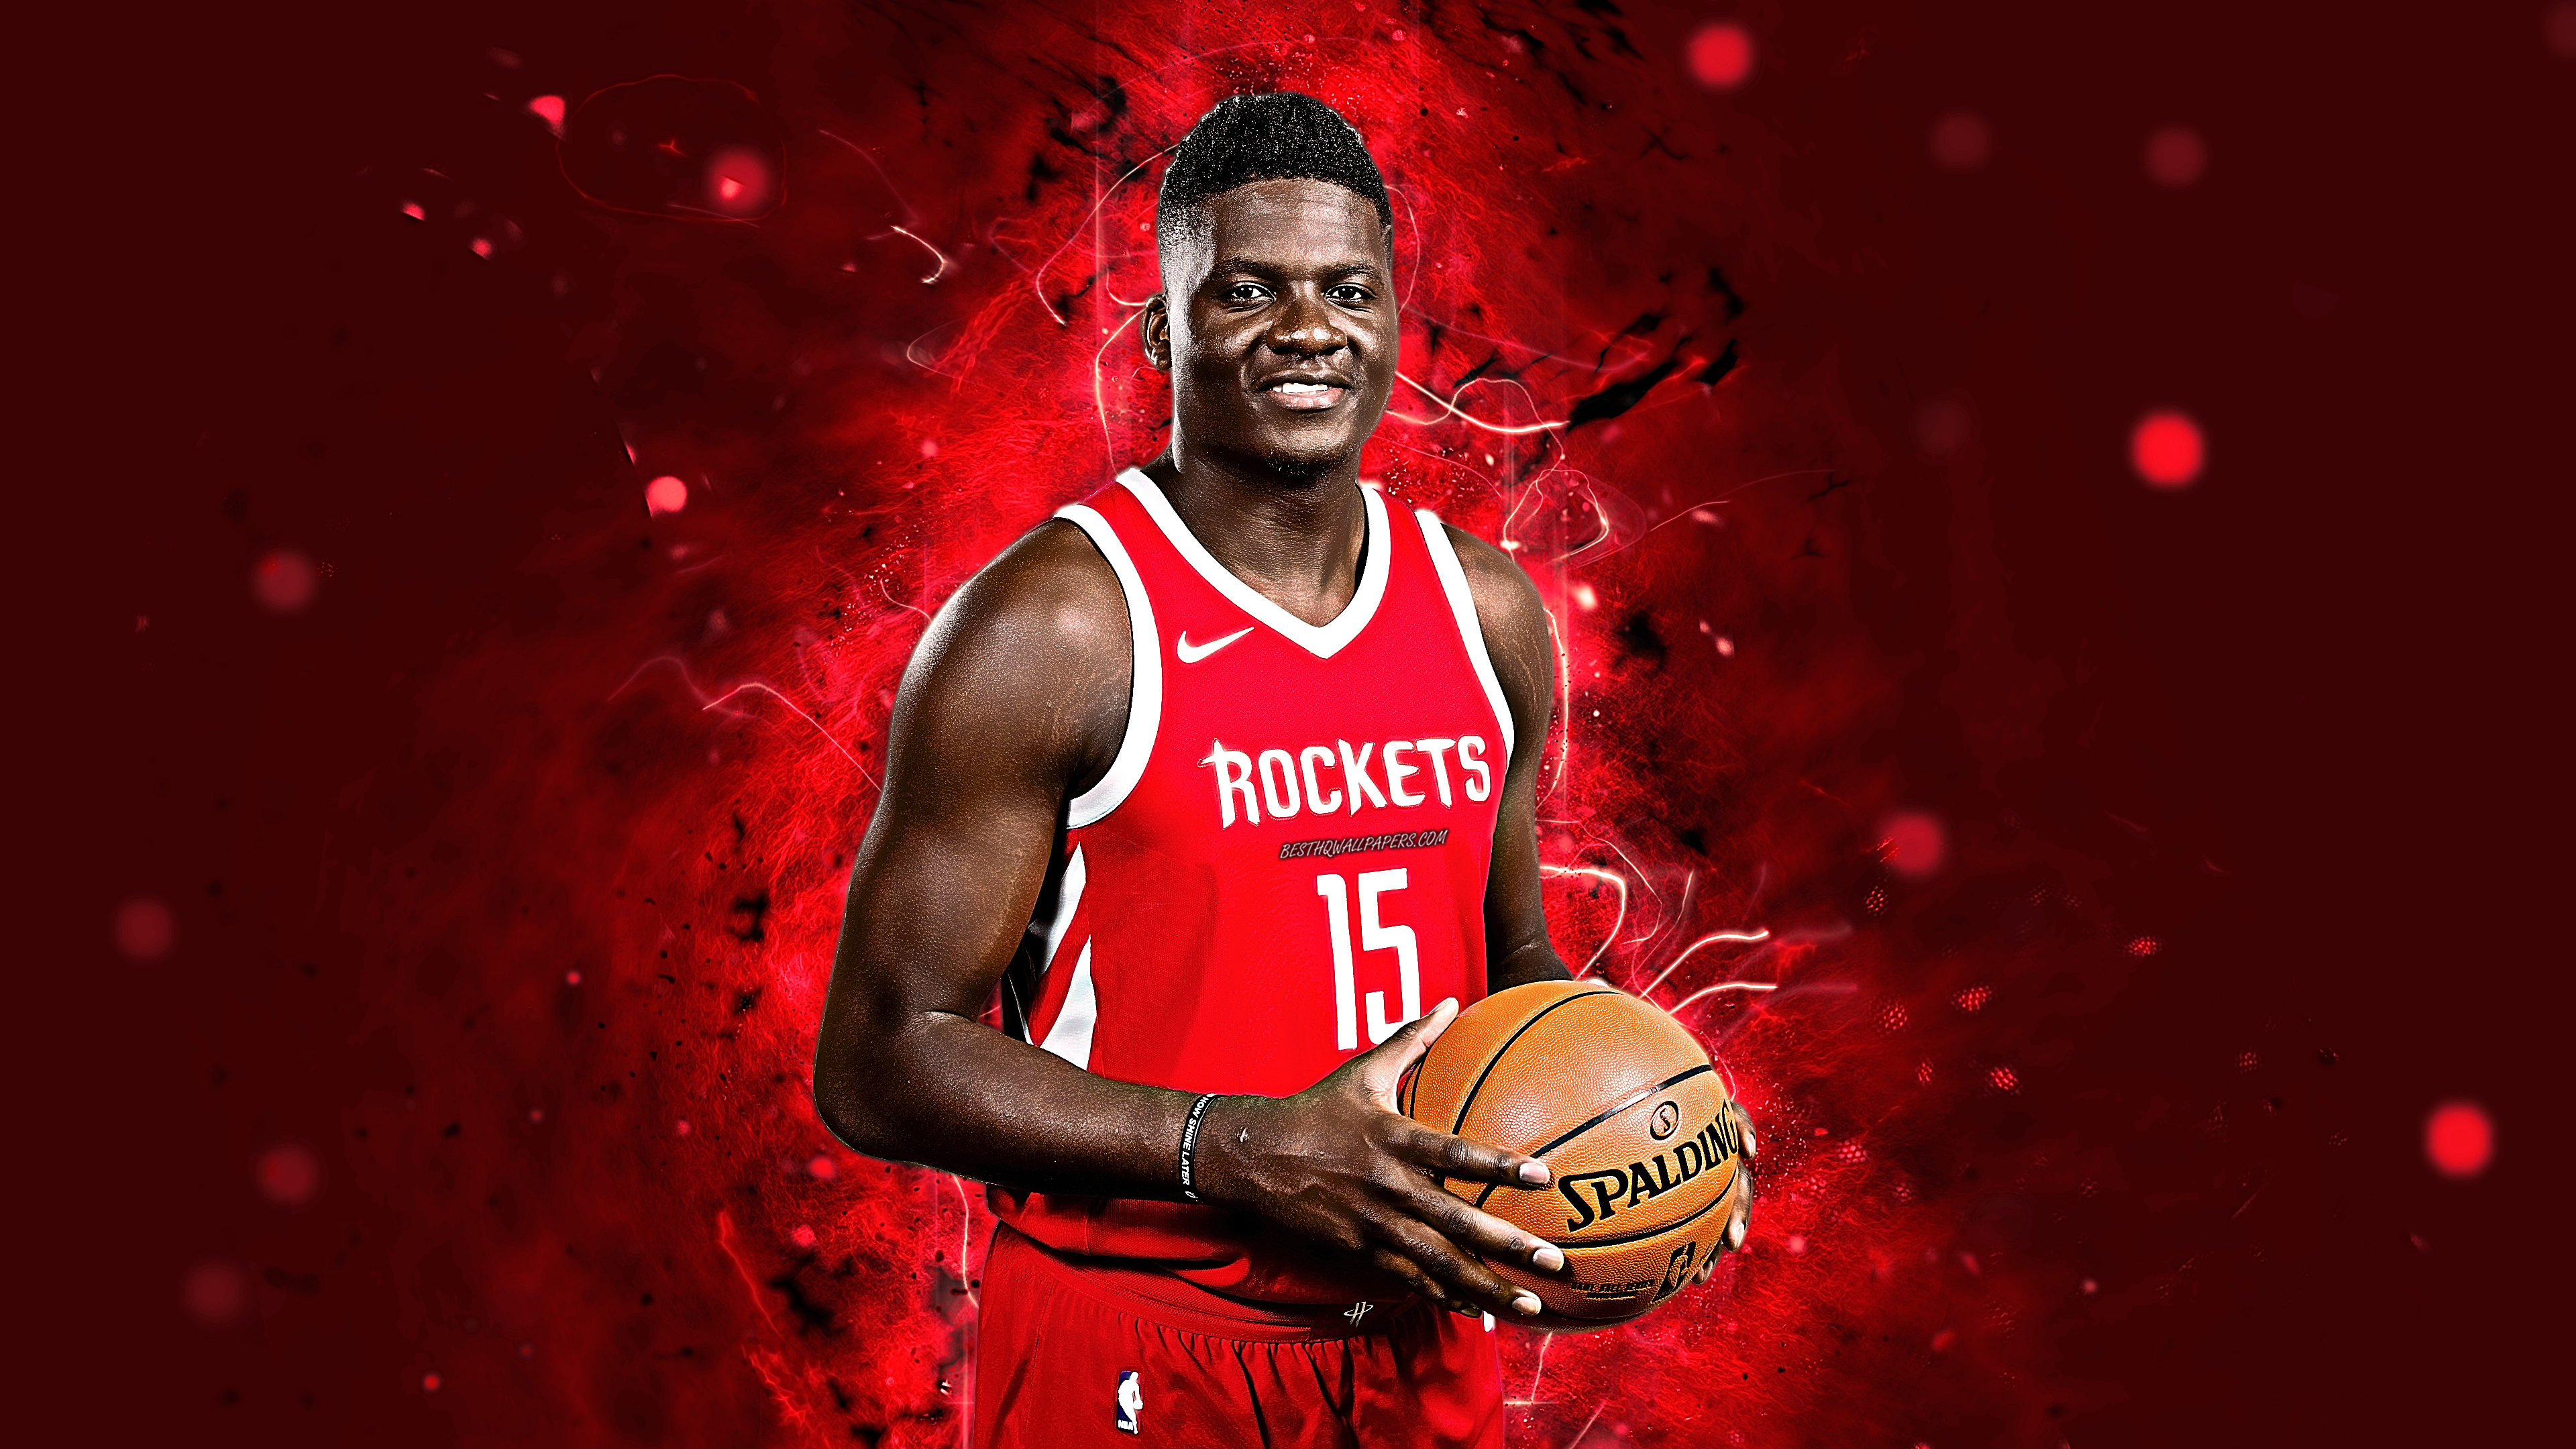 Clint Capela to play with Russel Westbrook after new Rockets deal